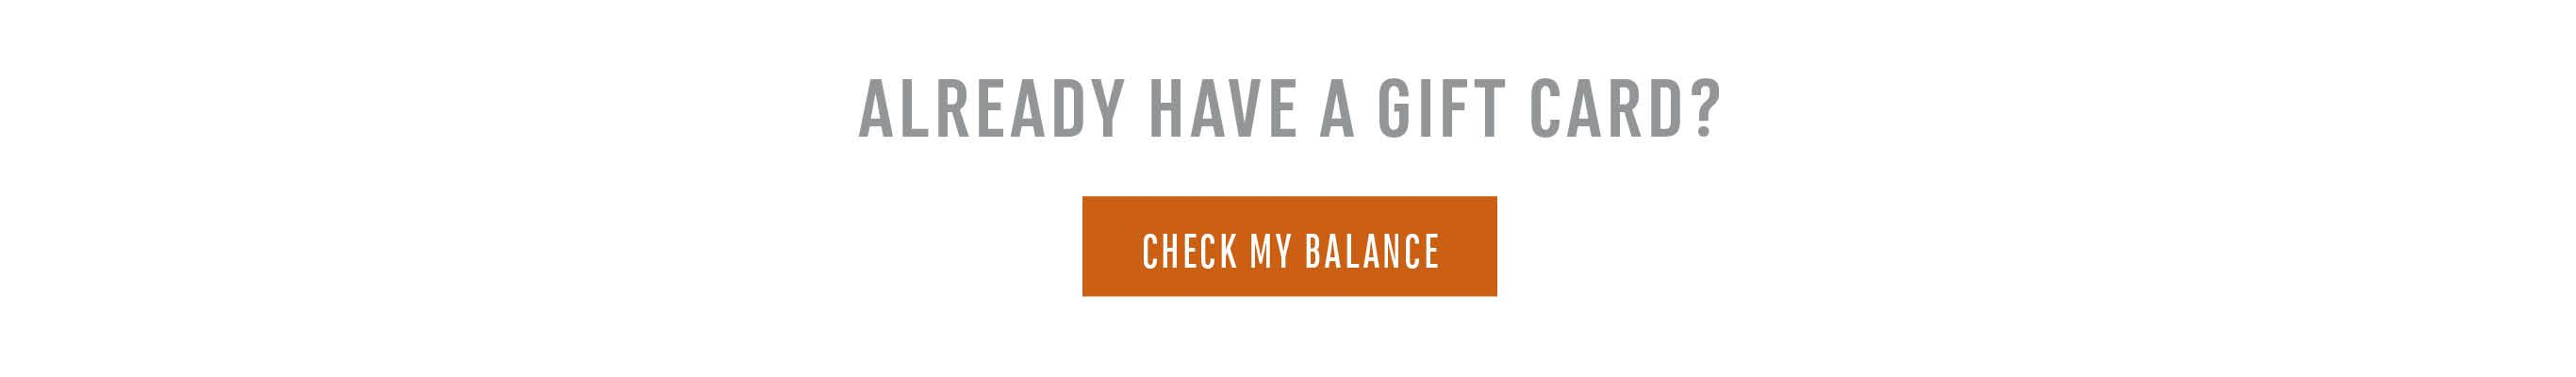 Already have a gift card - Click to check your balance